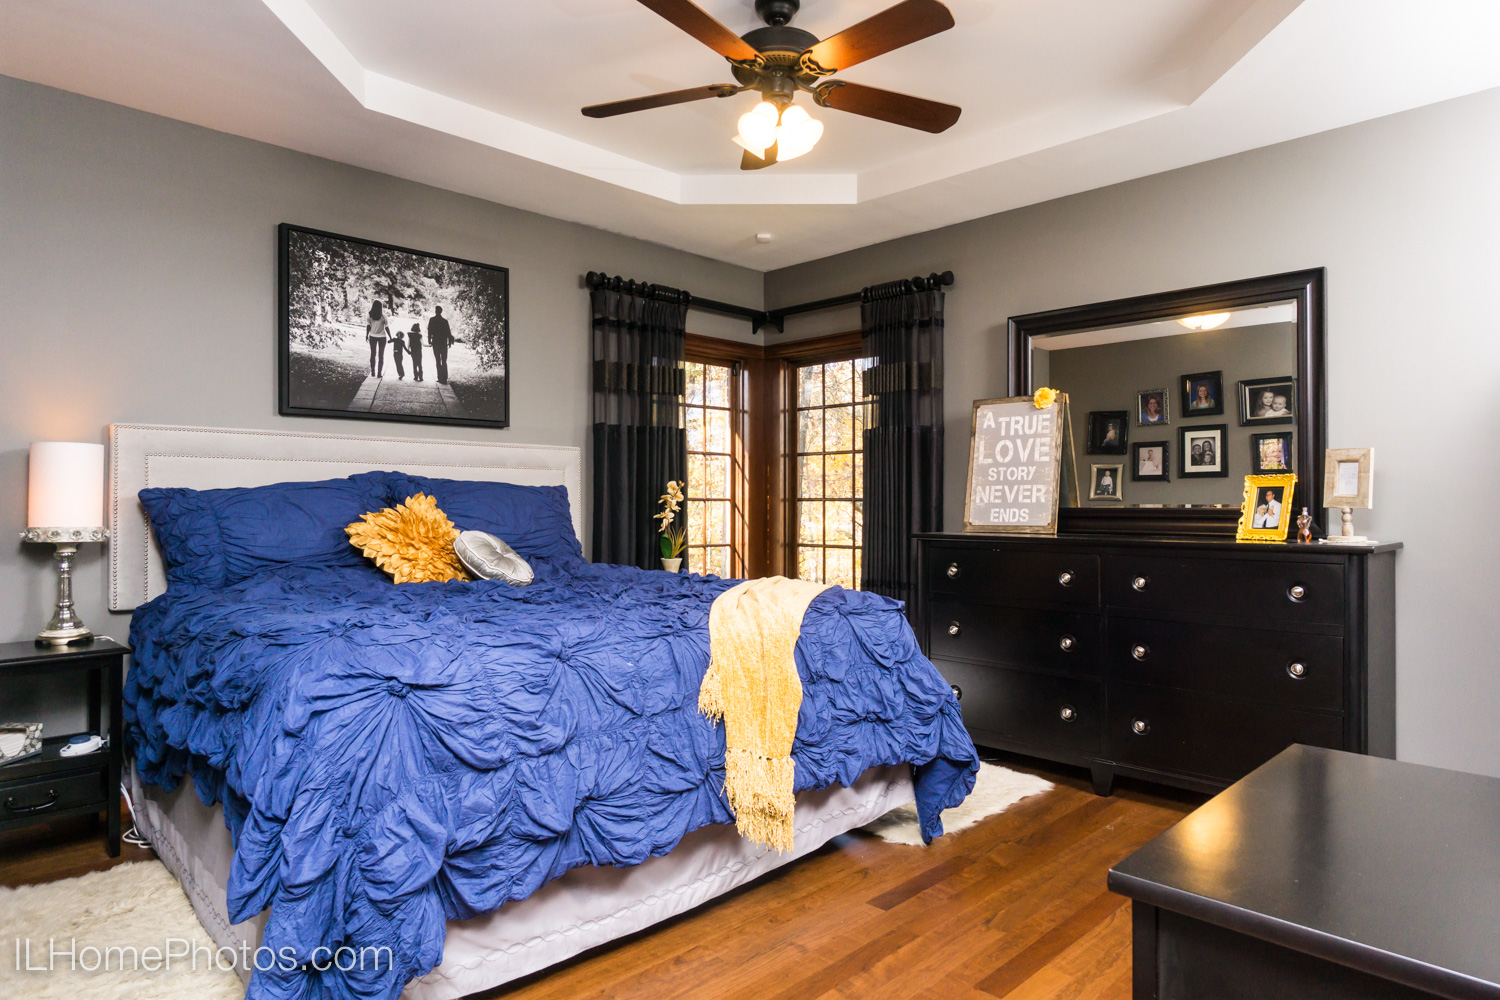 After - professional photograph of master bedroom